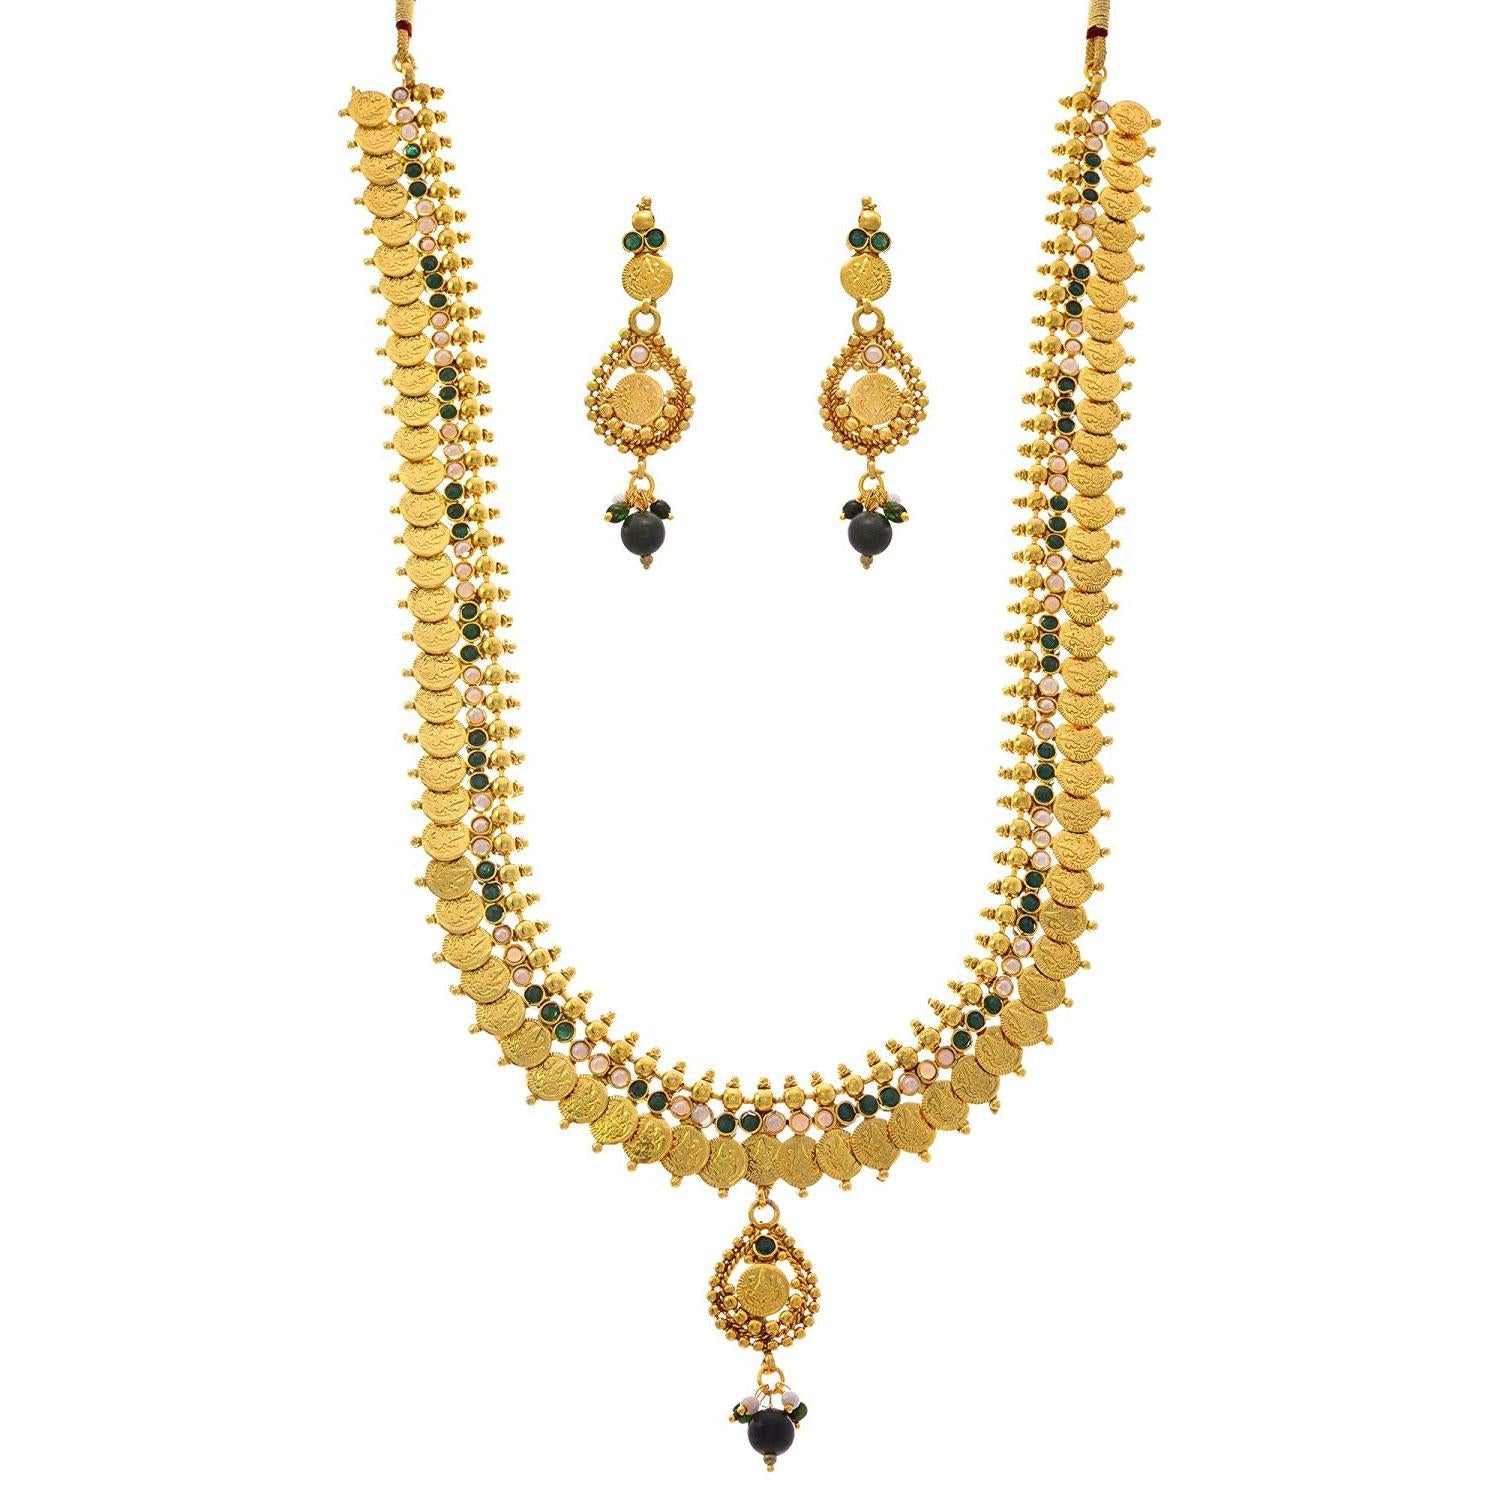 JFL - Traditional Ethnic Temple Laxmi Goddess Coin One Gram Gold Plated Stones & Pearls Designer Long Necklace Set for Women & Girls.